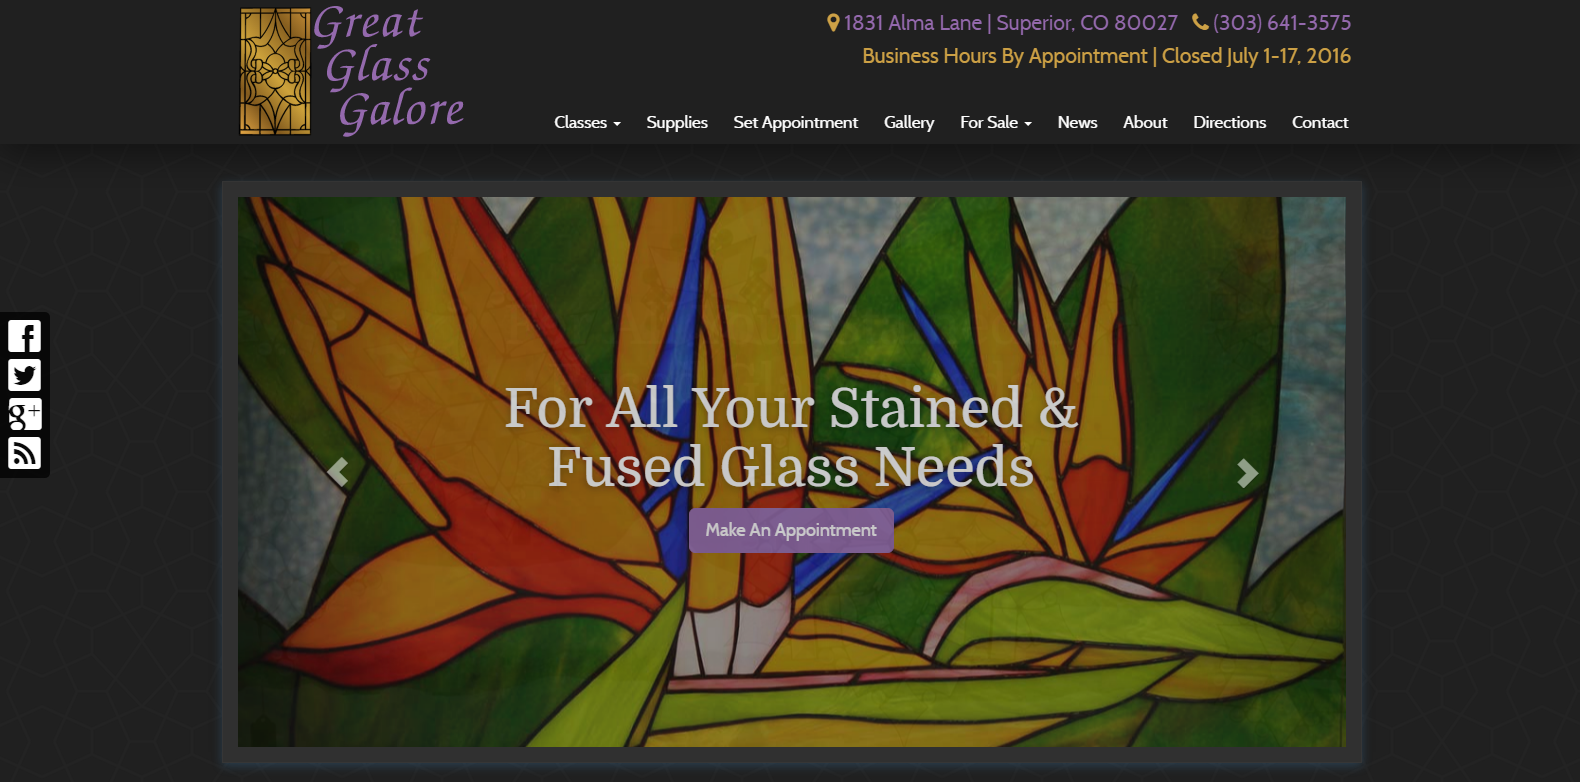 New Upgrade Launched: Great Glass Galore